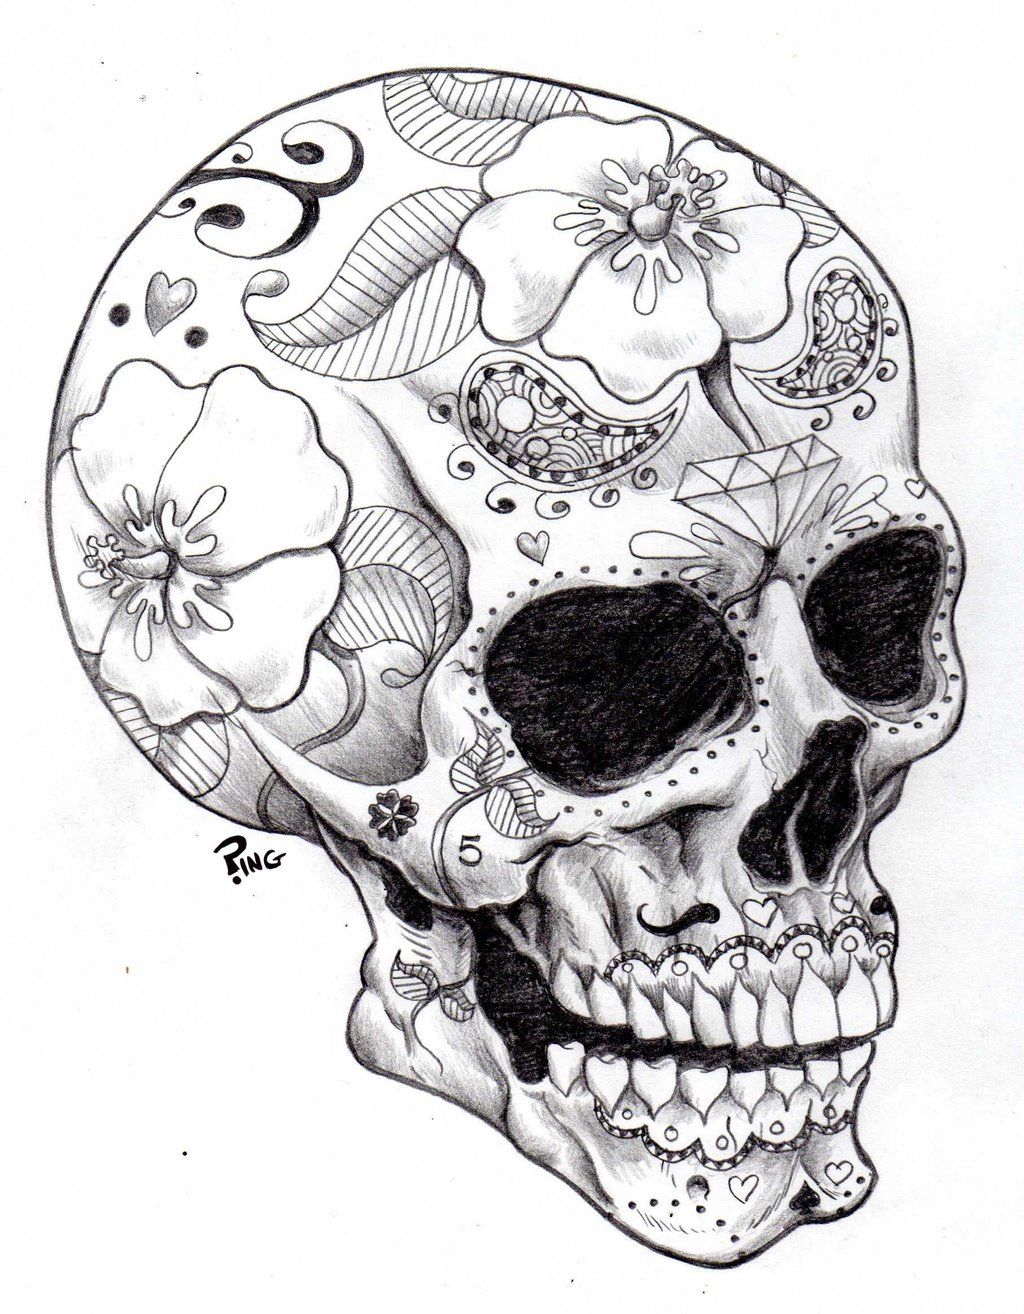 Cool Skeleton Drawing At Getdrawings Com Free For Personal Use